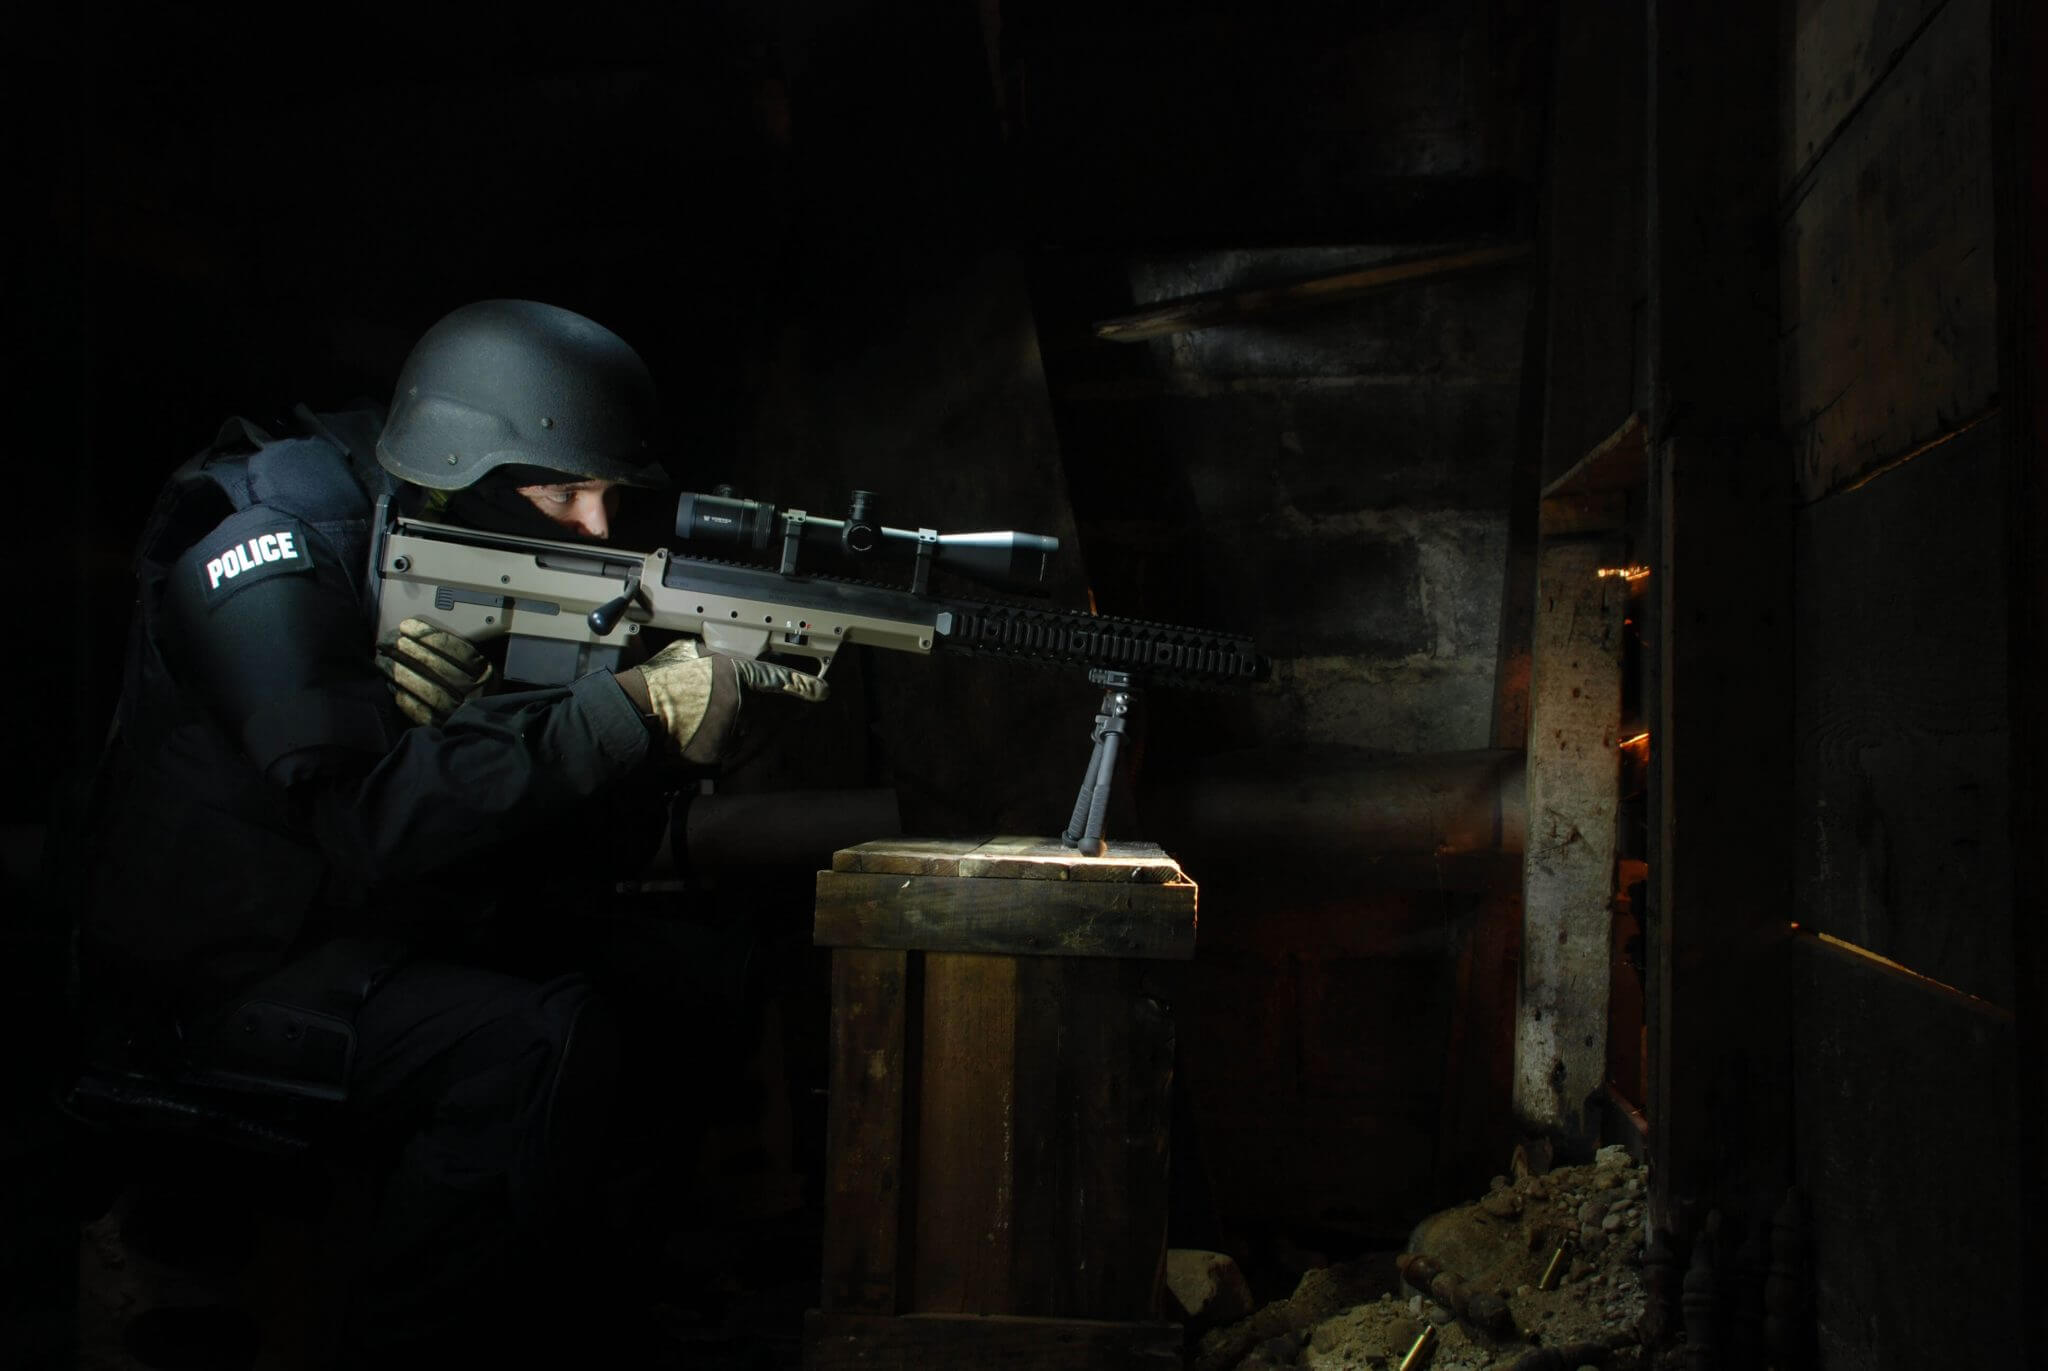 SRS-A1 Rifle Winner of the 2013 DTA Photo Contest.